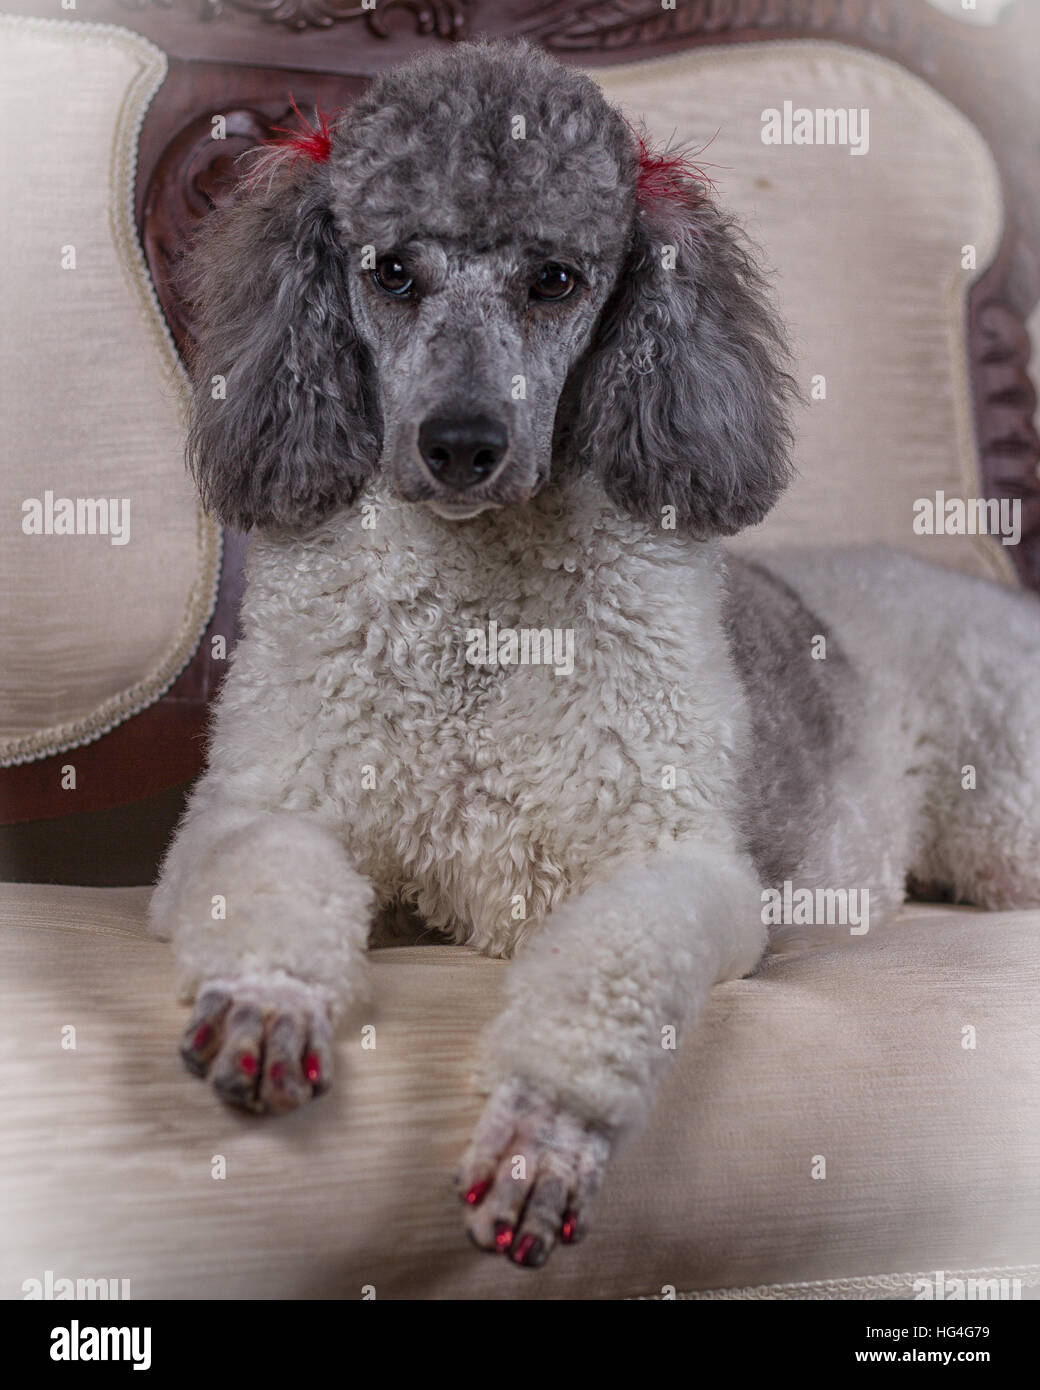 poodle dog on couch - Stock Image